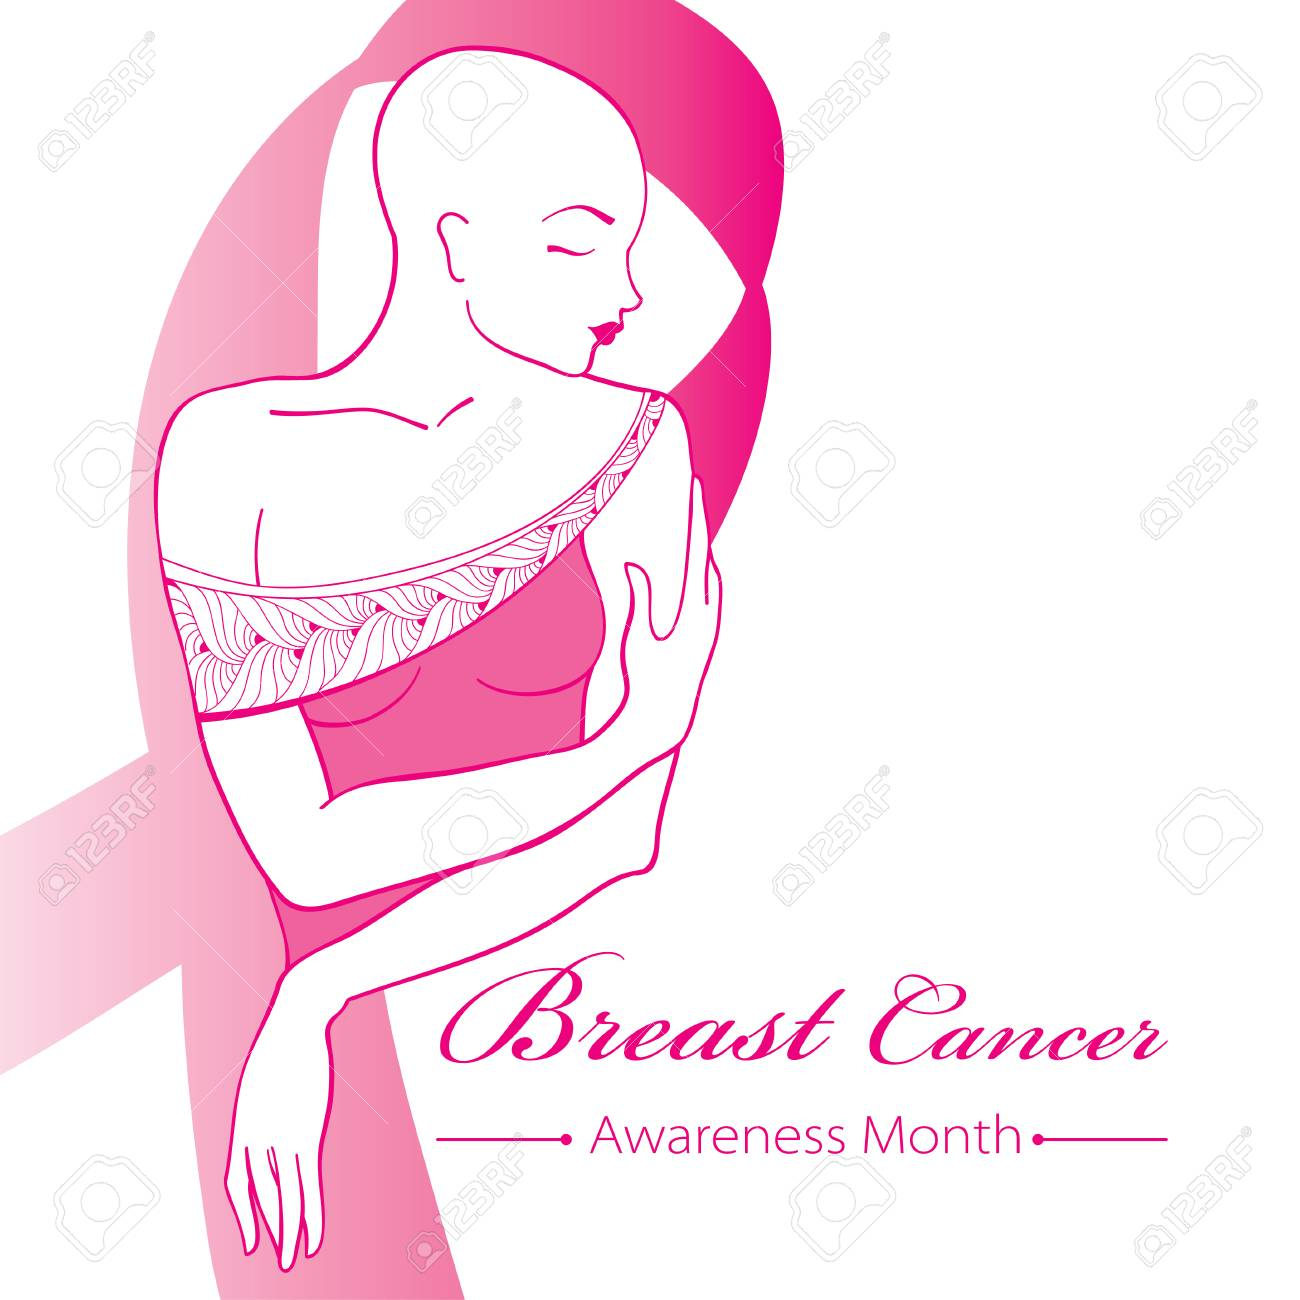 Drawing bald woman after chemotherapy with pink ribbon isolated drawing bald woman after chemotherapy with pink ribbon isolated on white background breast cancer awareness biocorpaavc Choice Image